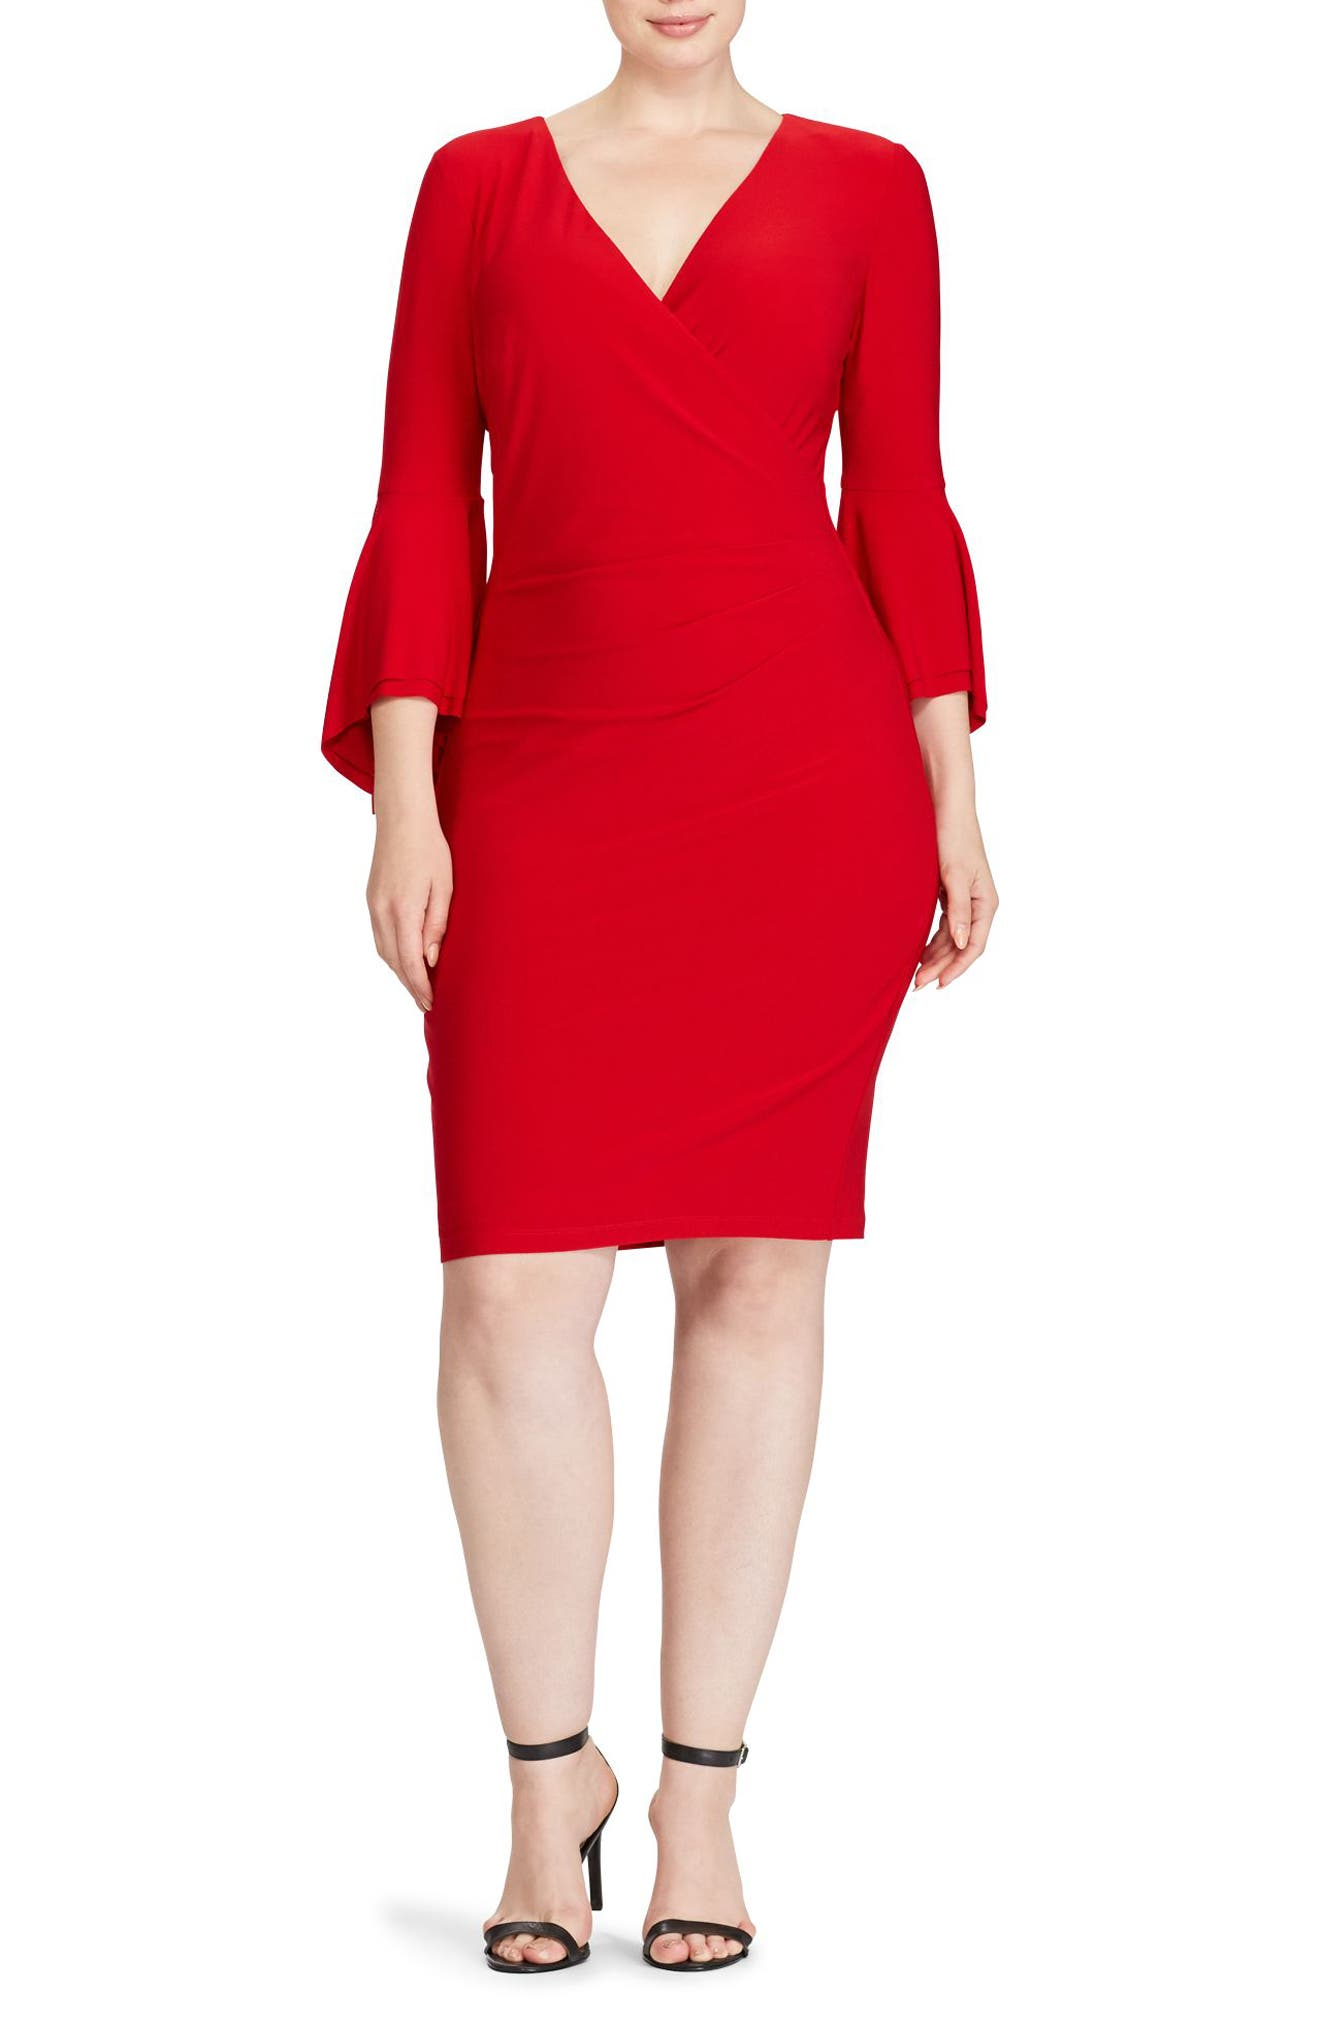 Alternate Image 1 Selected - Ralph Lauren Bell Sleeve Faux Wrap Dress (Plus Size)